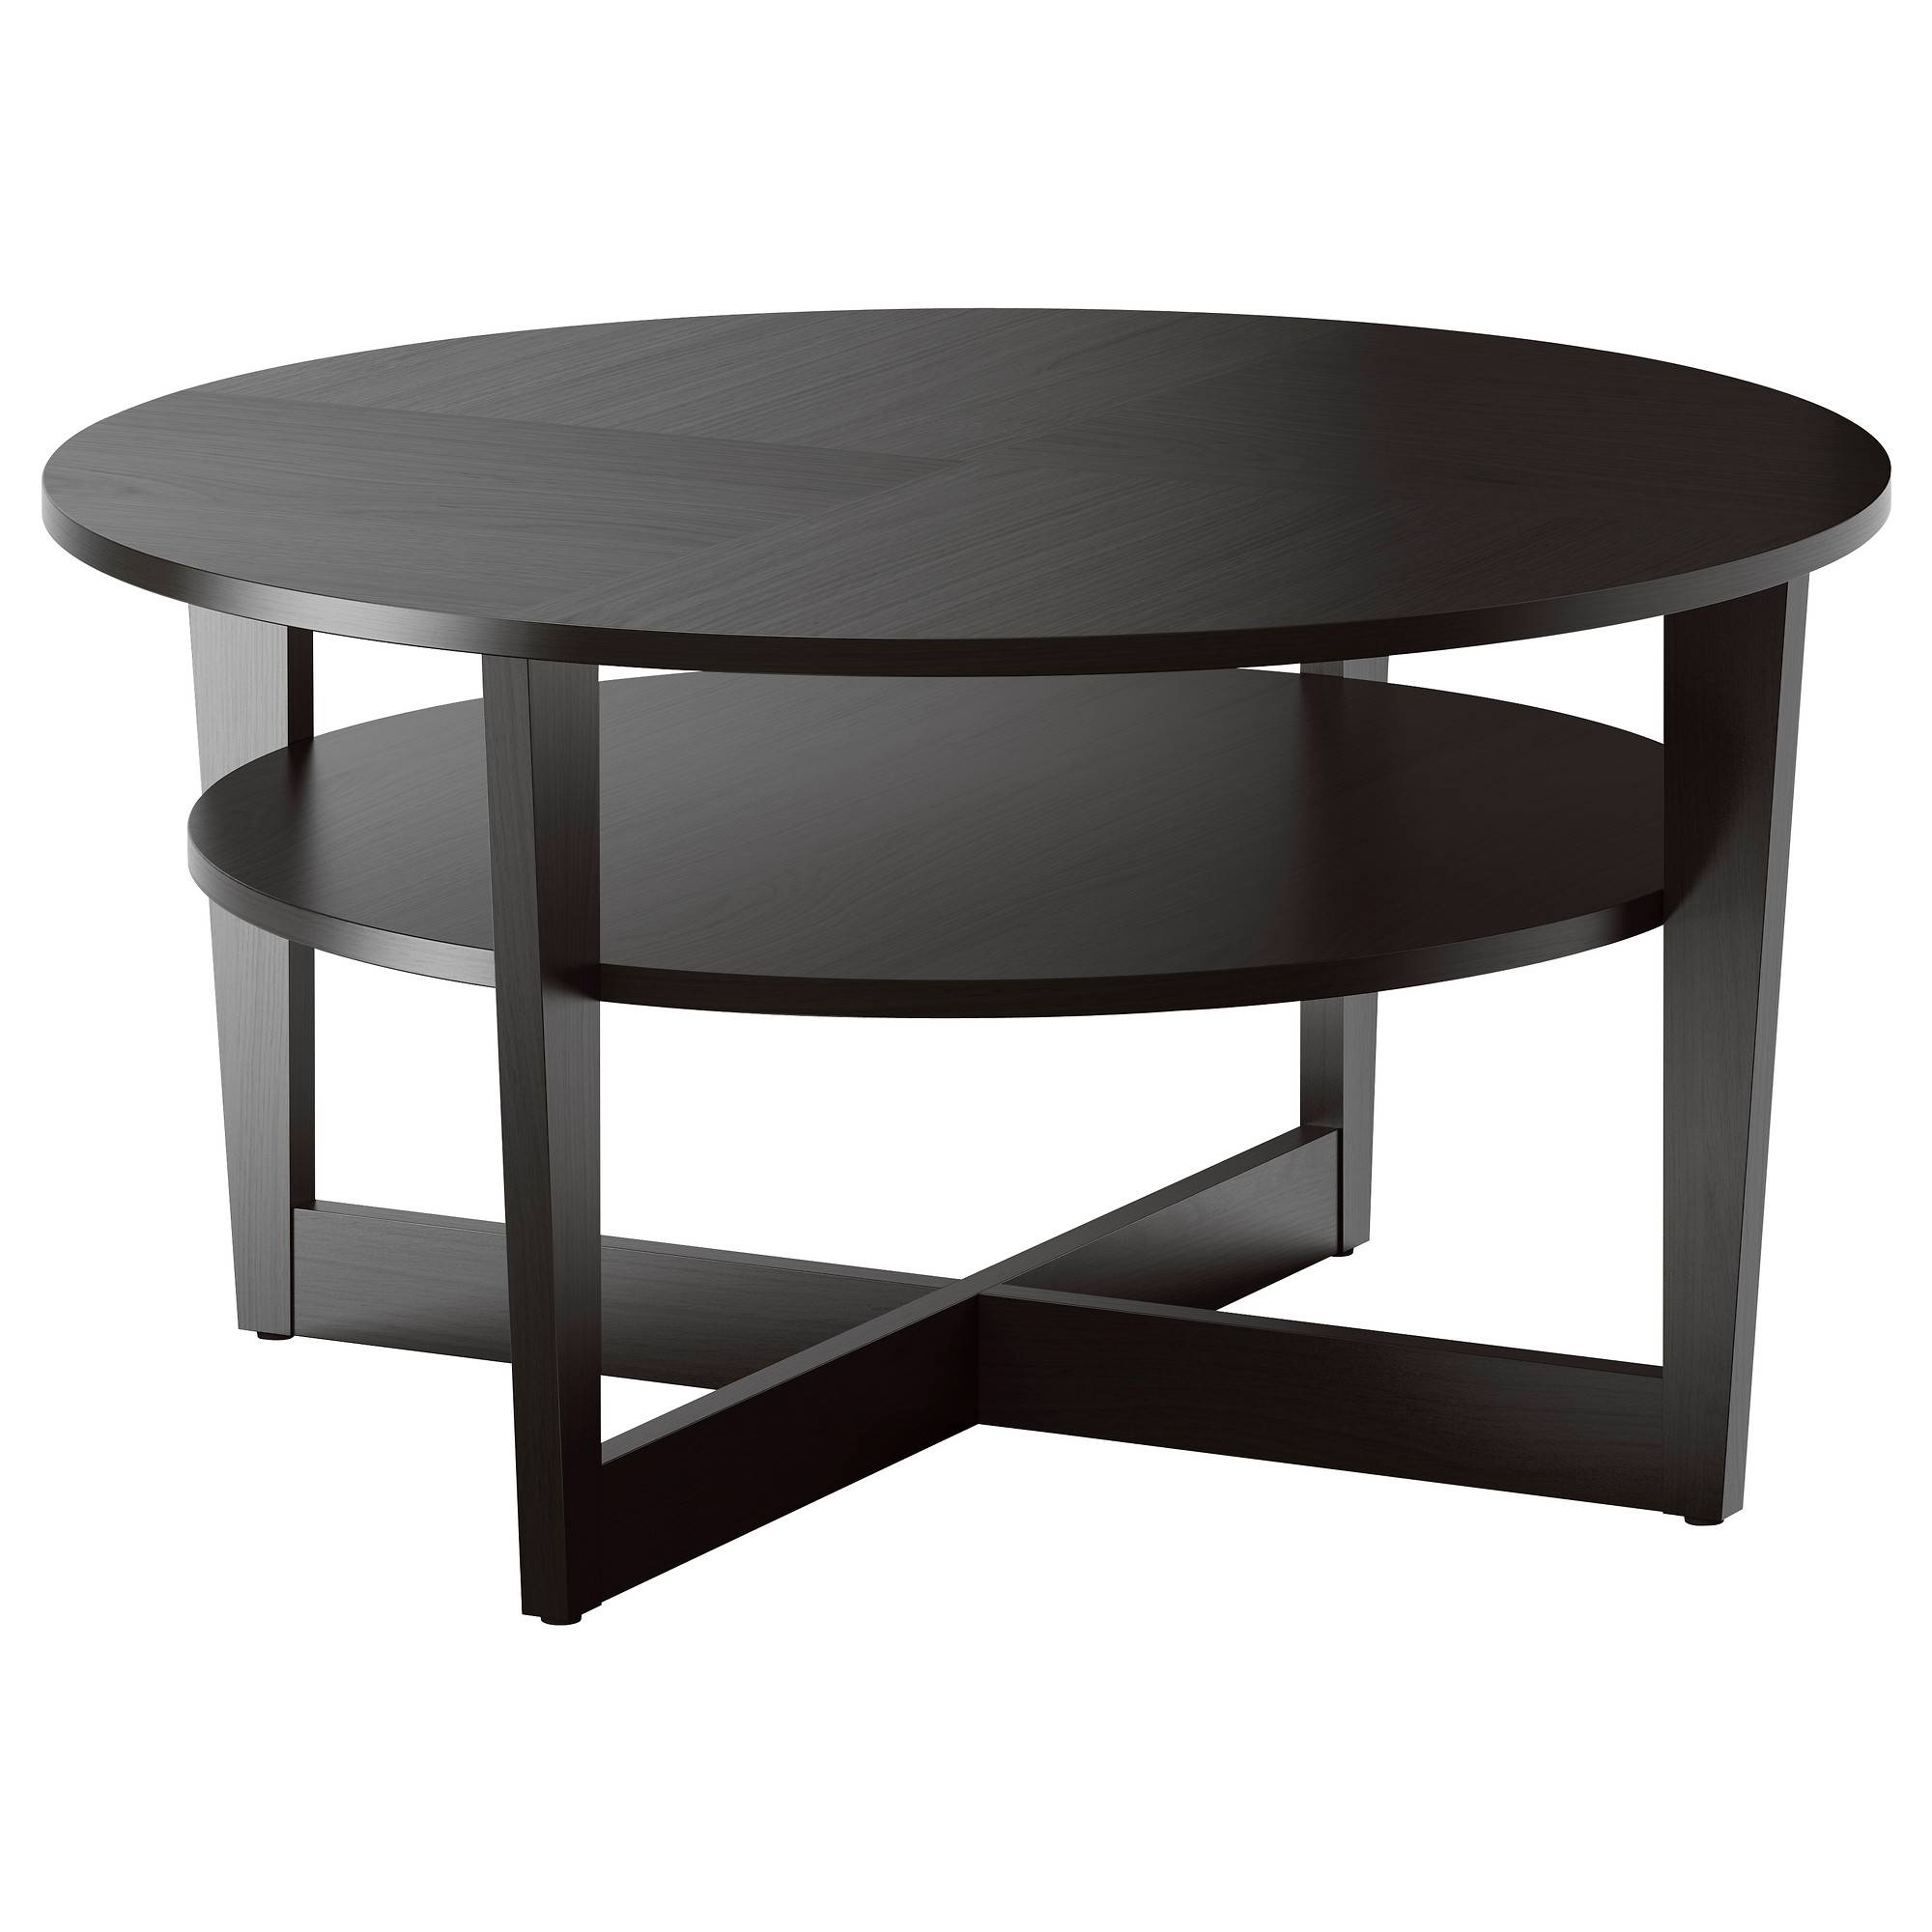 Coffee Tables: Astonishing Coffee Tables Round Ideas Metal Tables intended for Dark Wood Coffee Tables With Glass Top (Image 9 of 30)